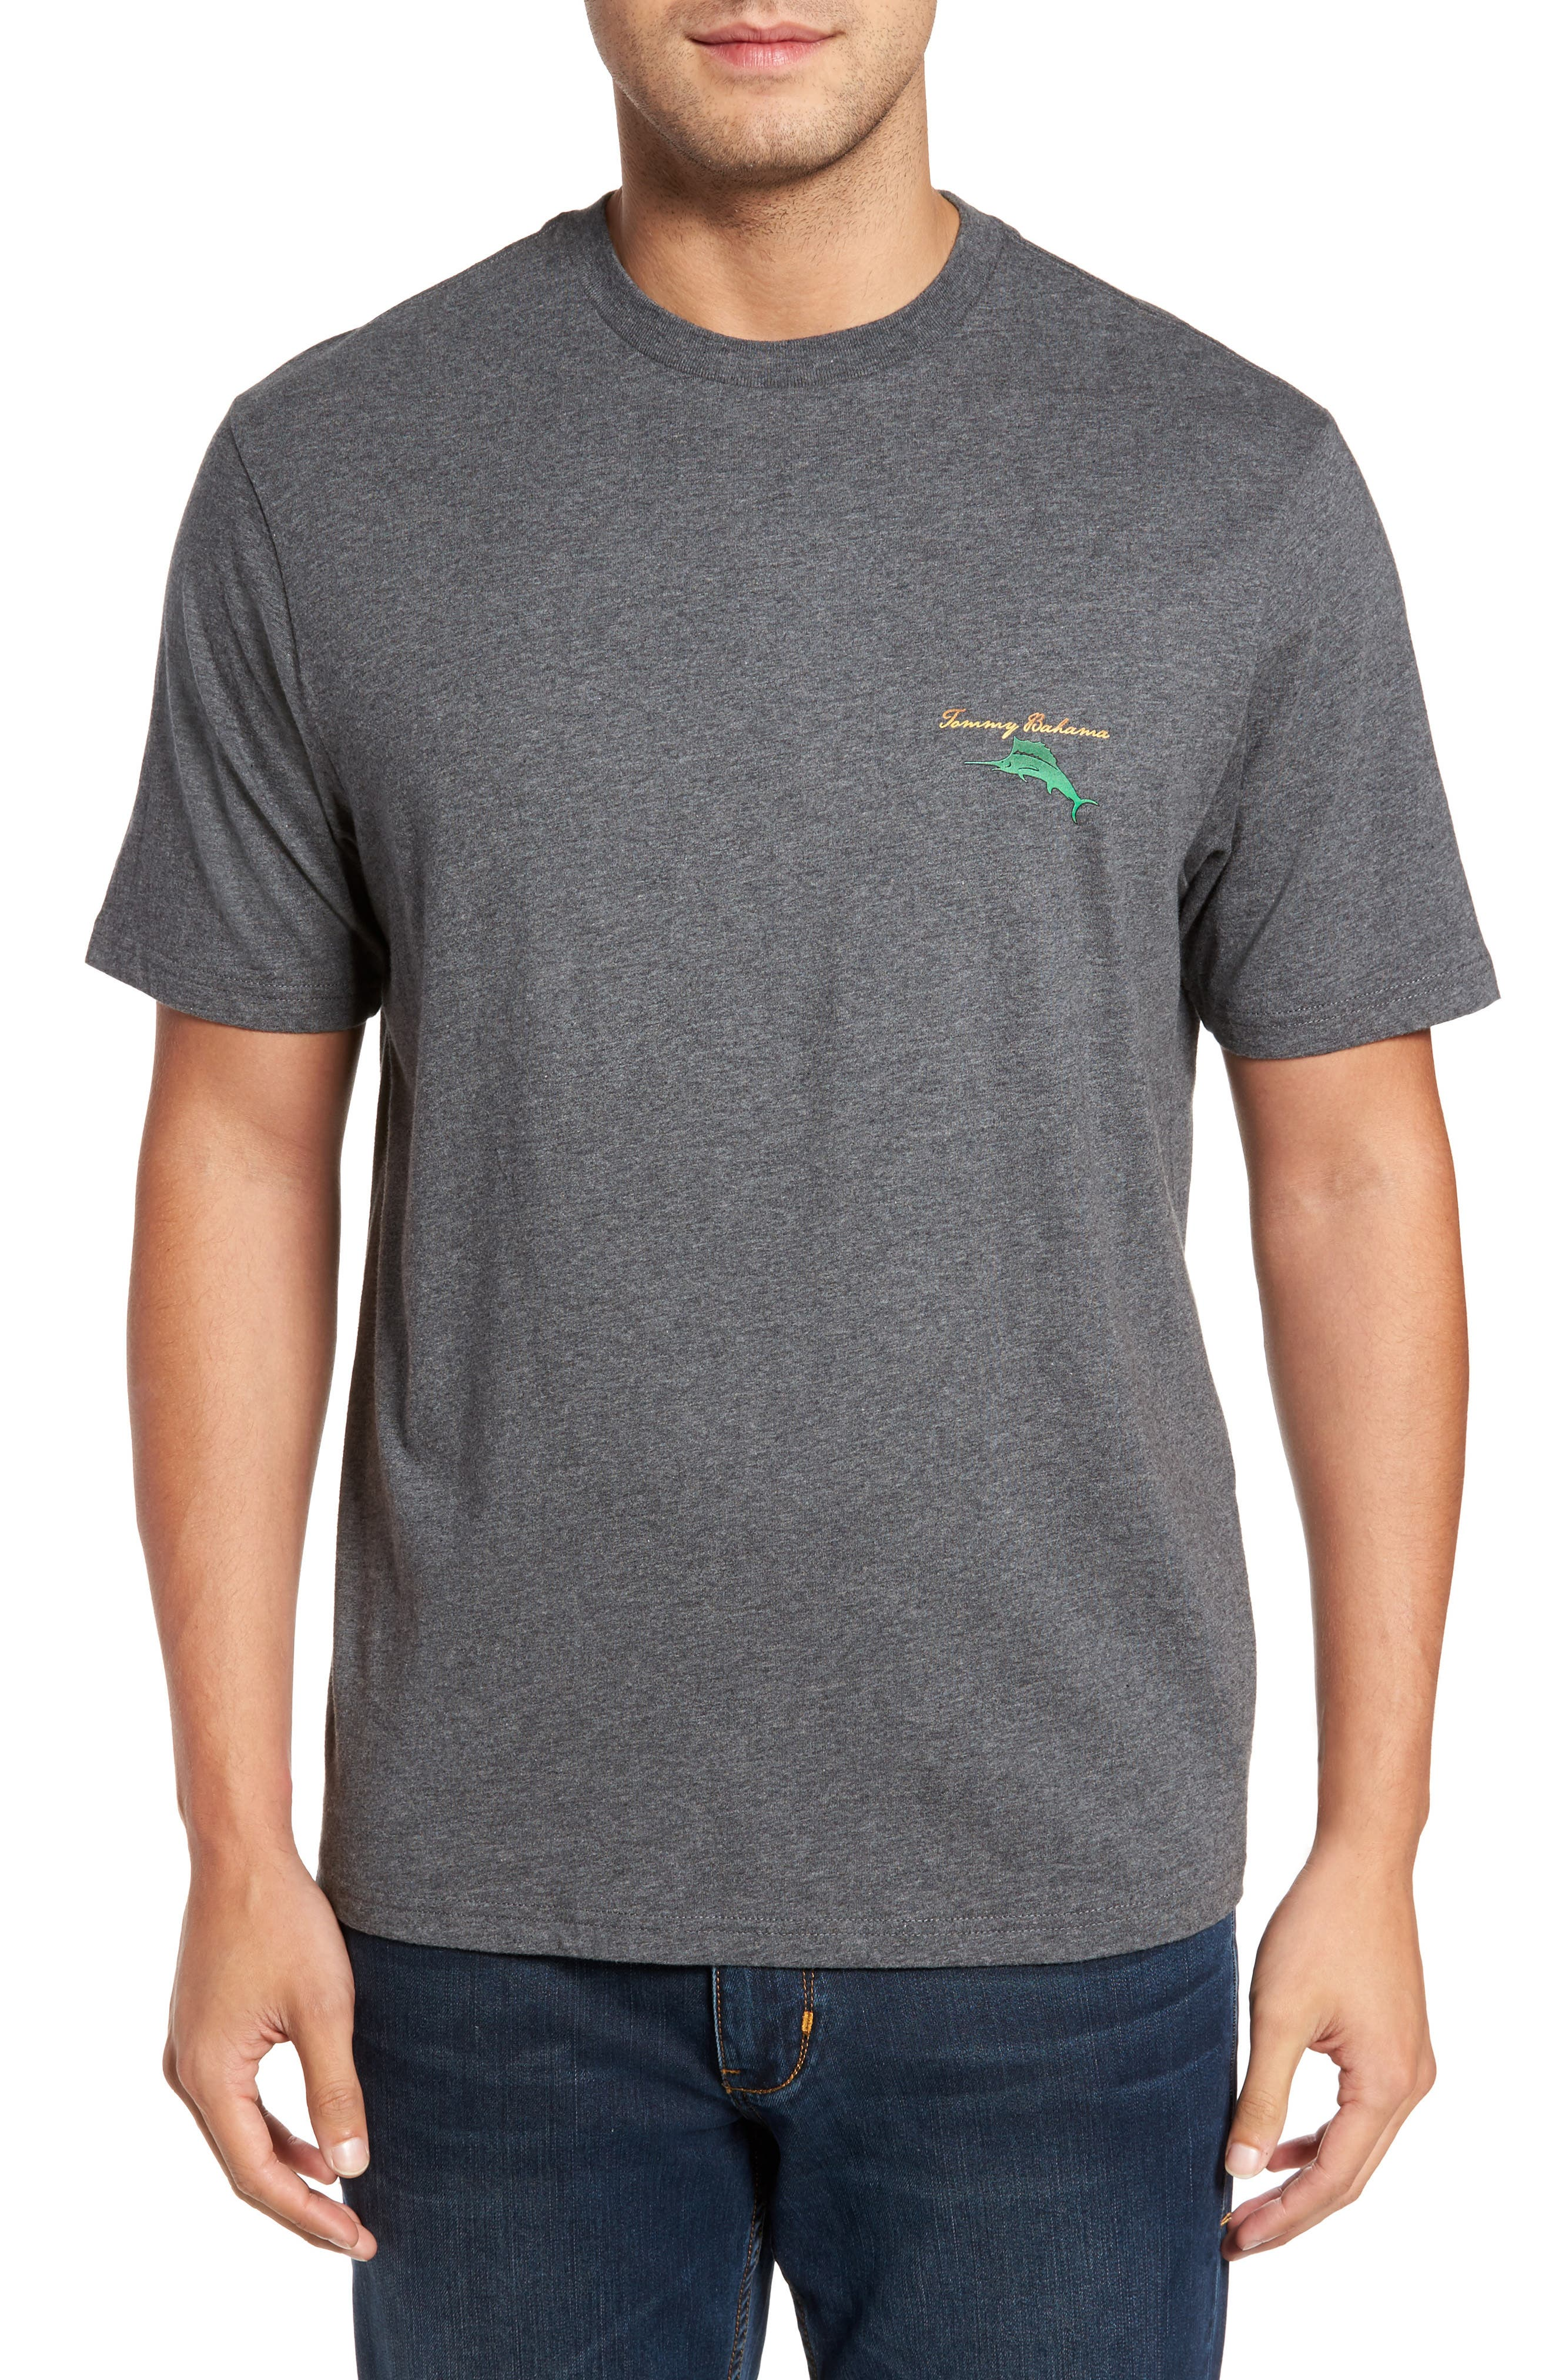 Main Image - Tommy Bahama The Fire Is So Delightful Graphic T-Shirt